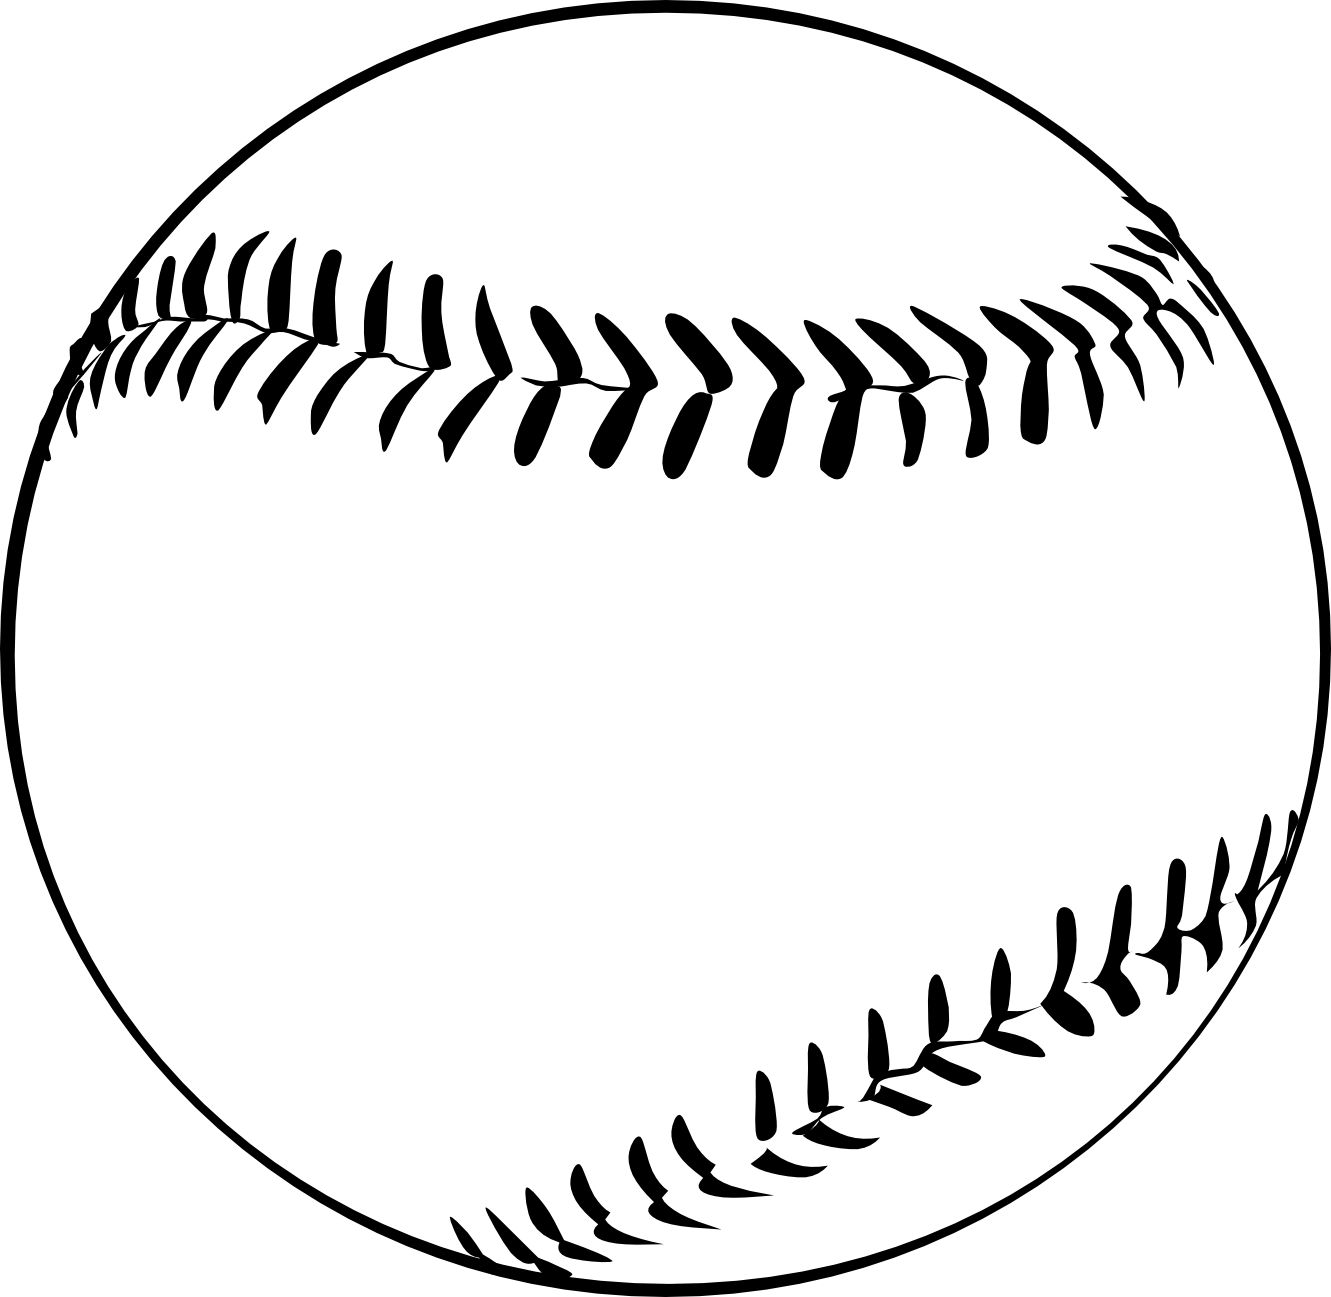 jpg royalty free download Baseball diamond clipart black and white. Ball panda free baseballclipartblackandwhite